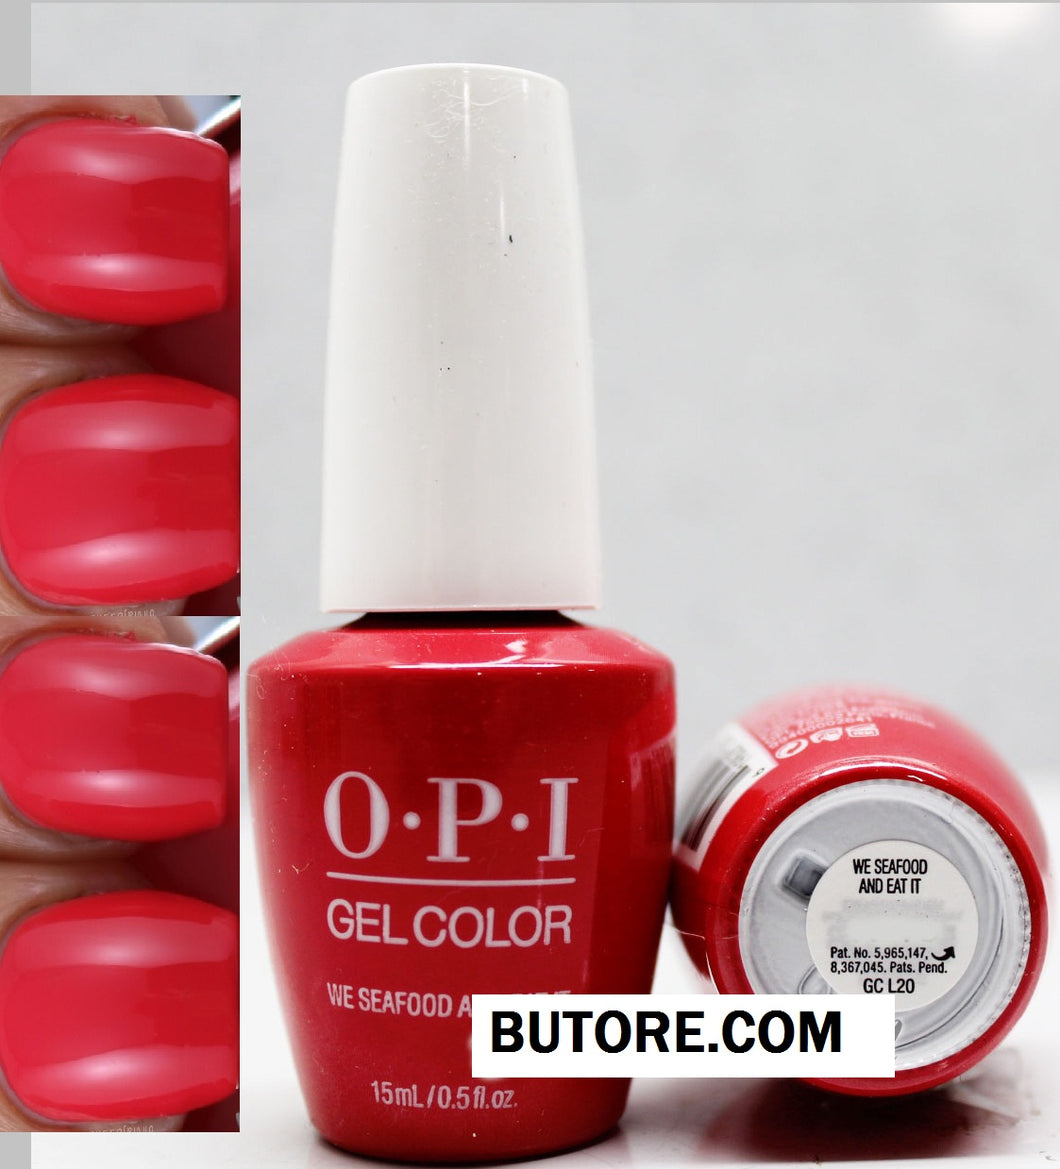 OPI We Seafood and Eat It Gel